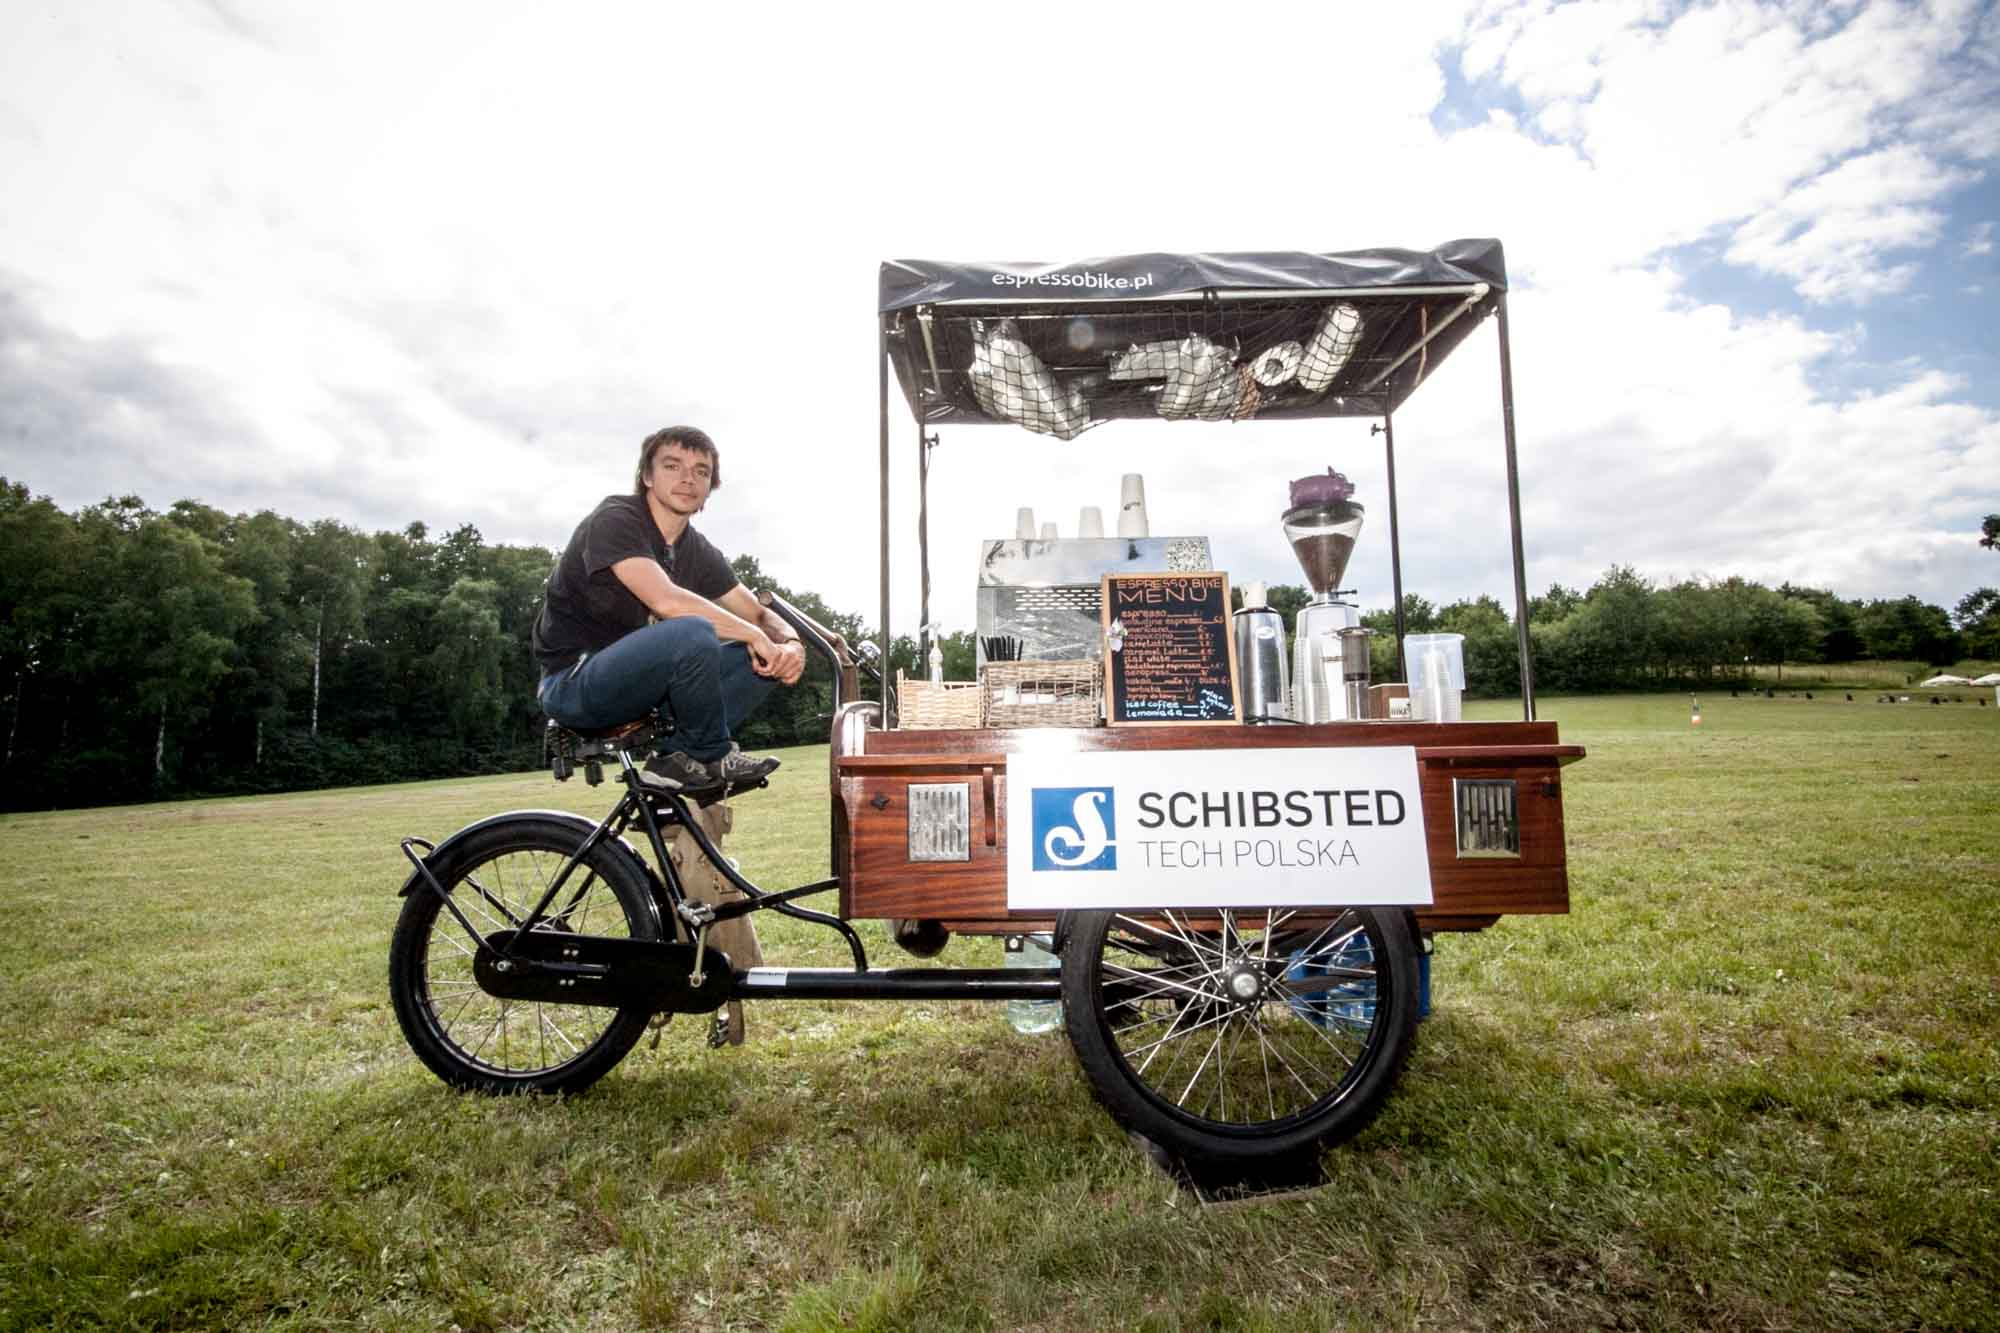 Our very own coffee bike!